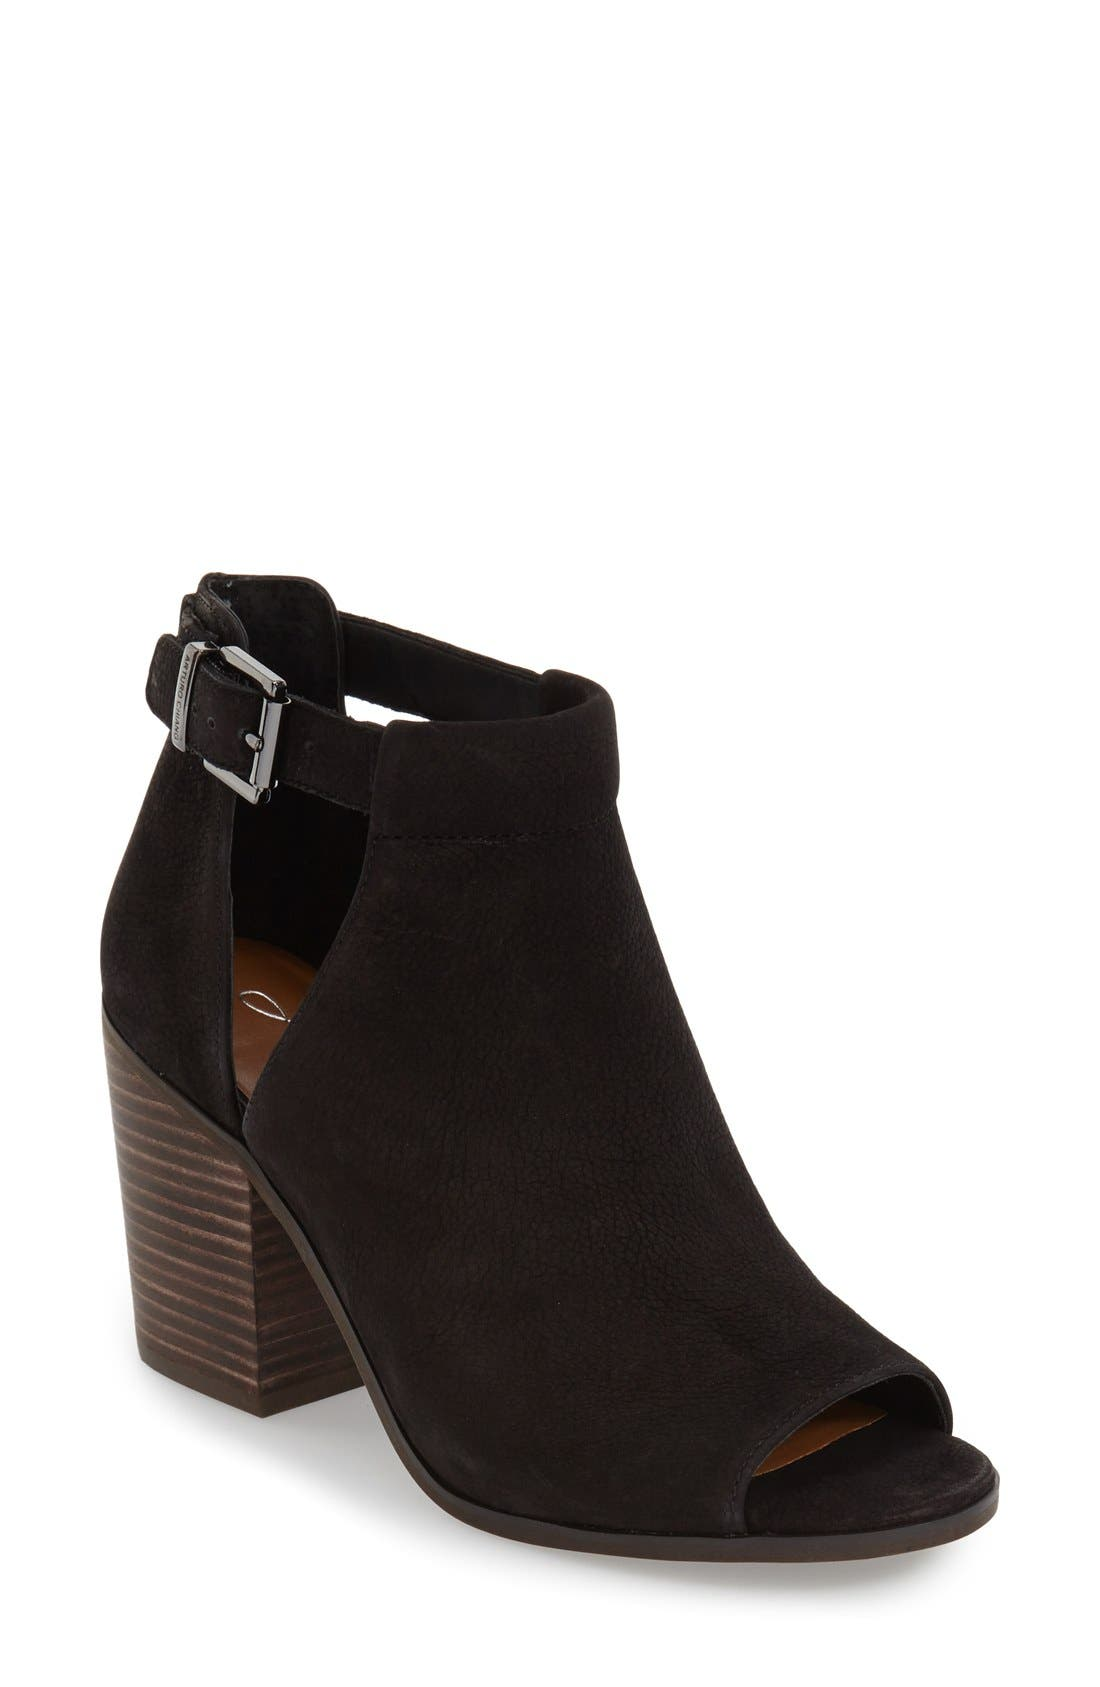 'Cordeliah' Split Shaft Peep Toe Bootie,                             Main thumbnail 1, color,                             Black Leather